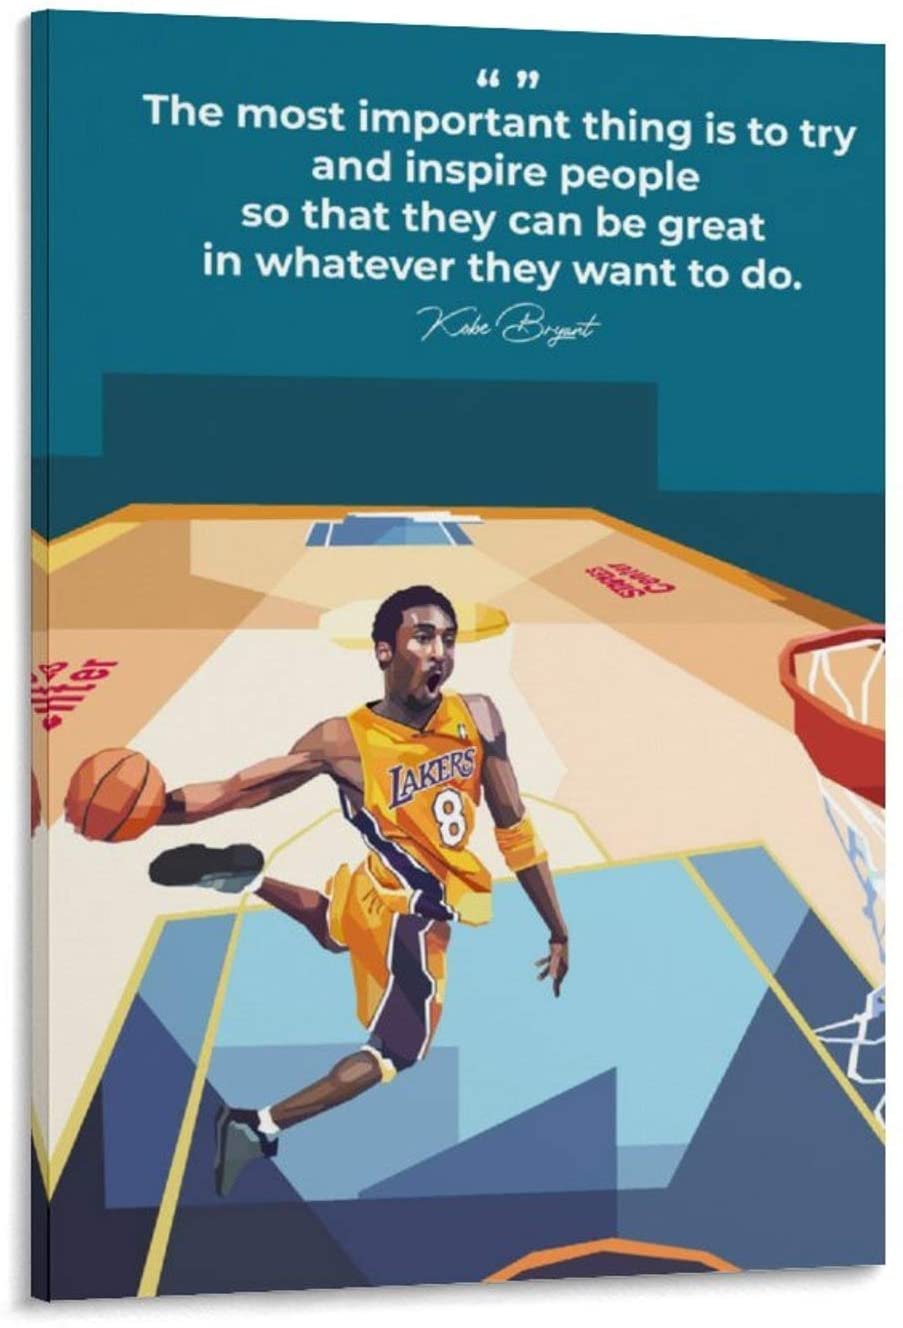 ADGAI Kobe Bryant Canvas Art Poster and Wall Art Picture Print Modern Family Bedroom Decor Posters 20x30inch(50x75cm)